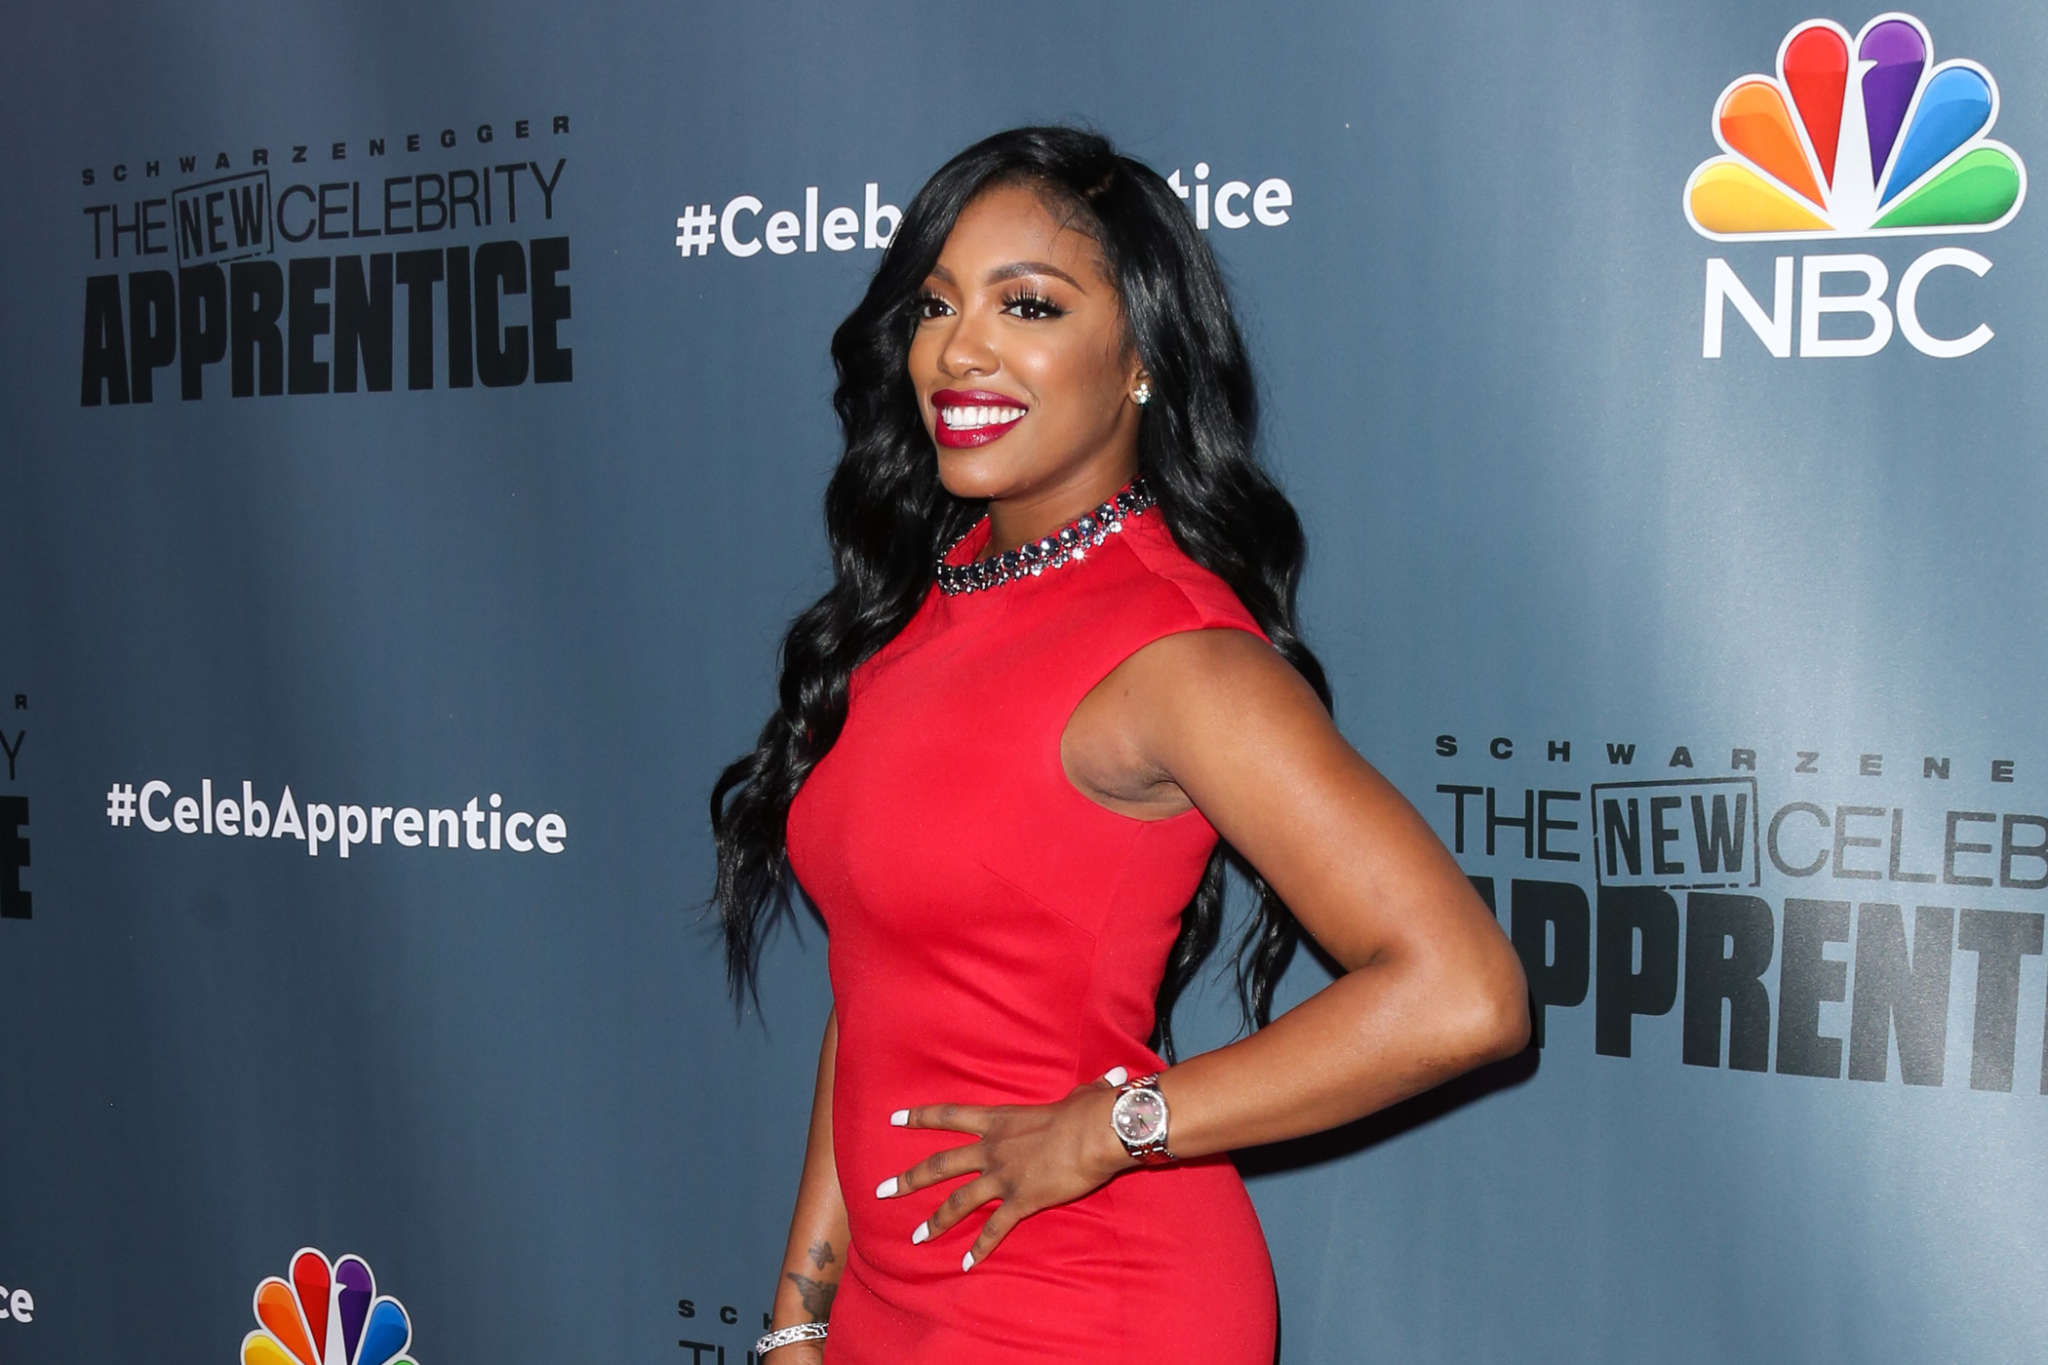 Porsha Williams' Fans Are Freaking Out When They See Her On A Hospital Bed – Find Out What Happened!